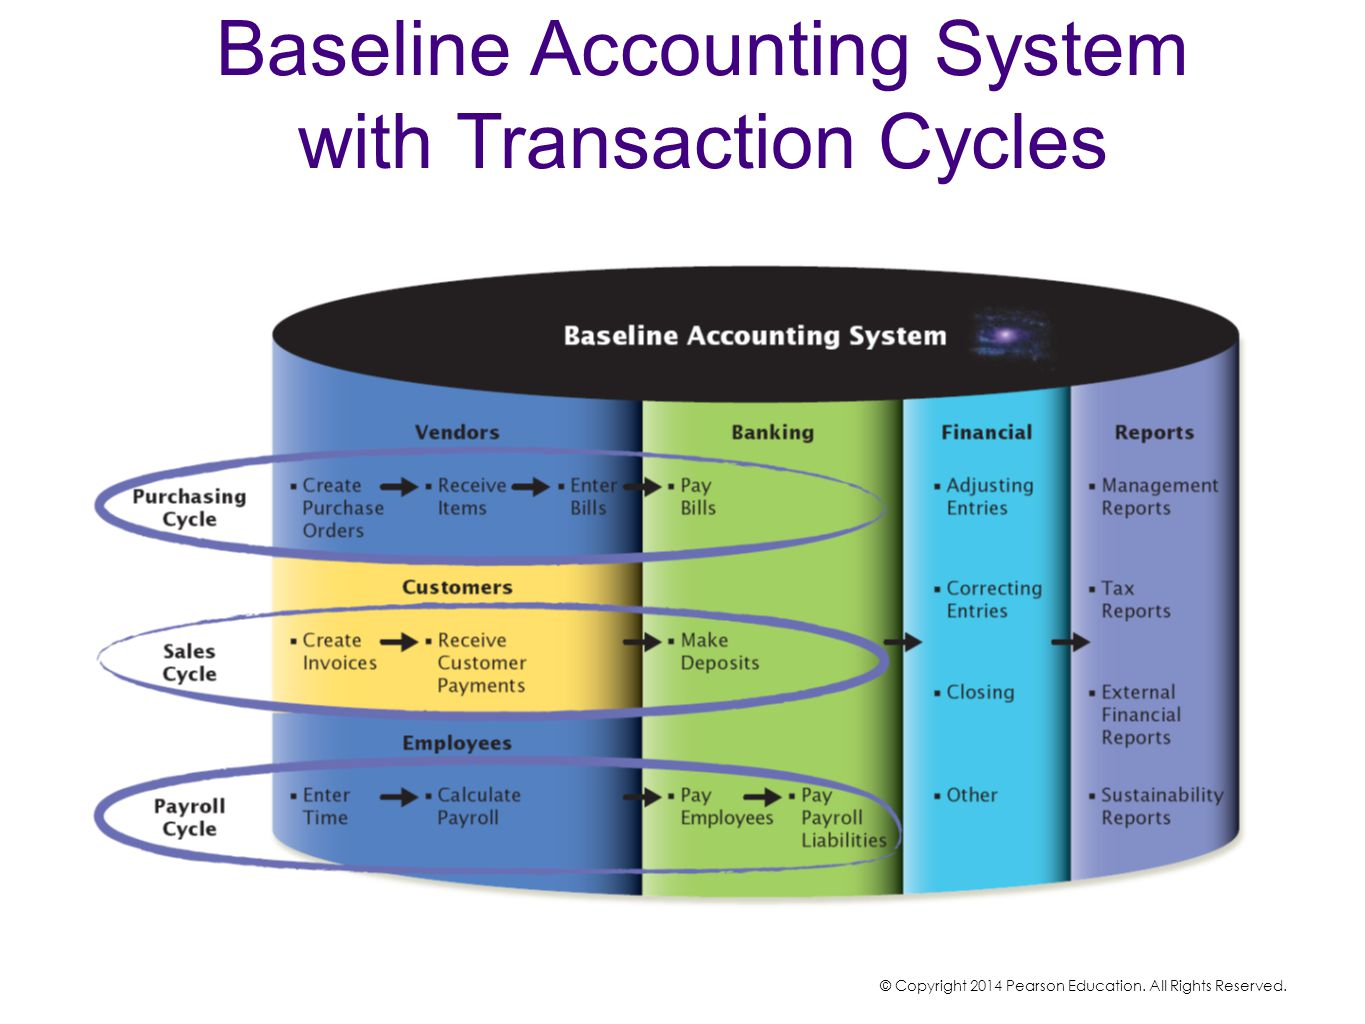 Baseline Accounting System with Transaction Cycles © Copyright 2014 Pearson Education. All Rights Reserved.